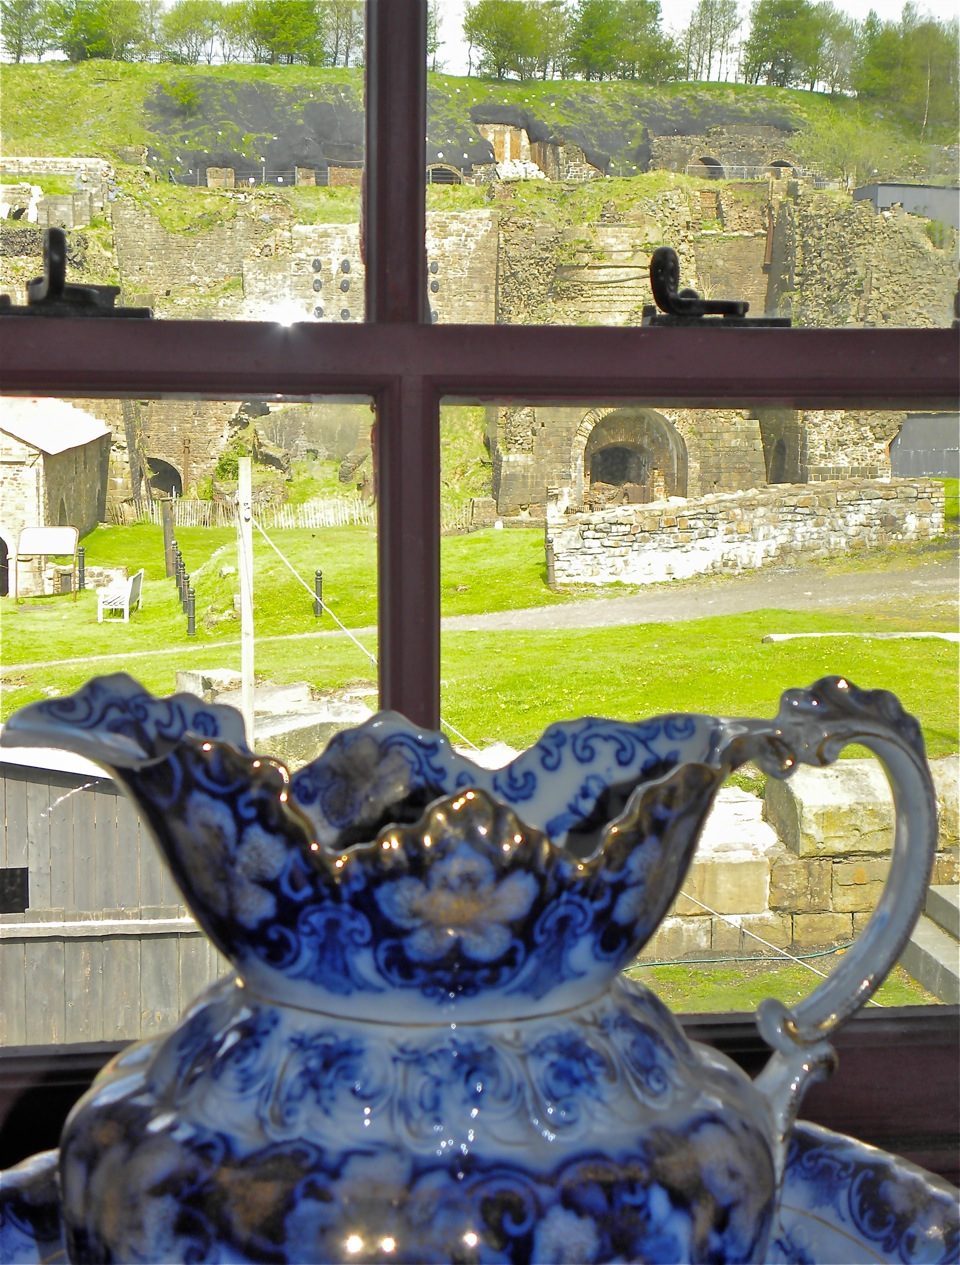 A water pitcher sits on the windowsill of one of the stone cottages the supervisors' families occupied more than 200 years ago at the Blaenavon Iron Works.